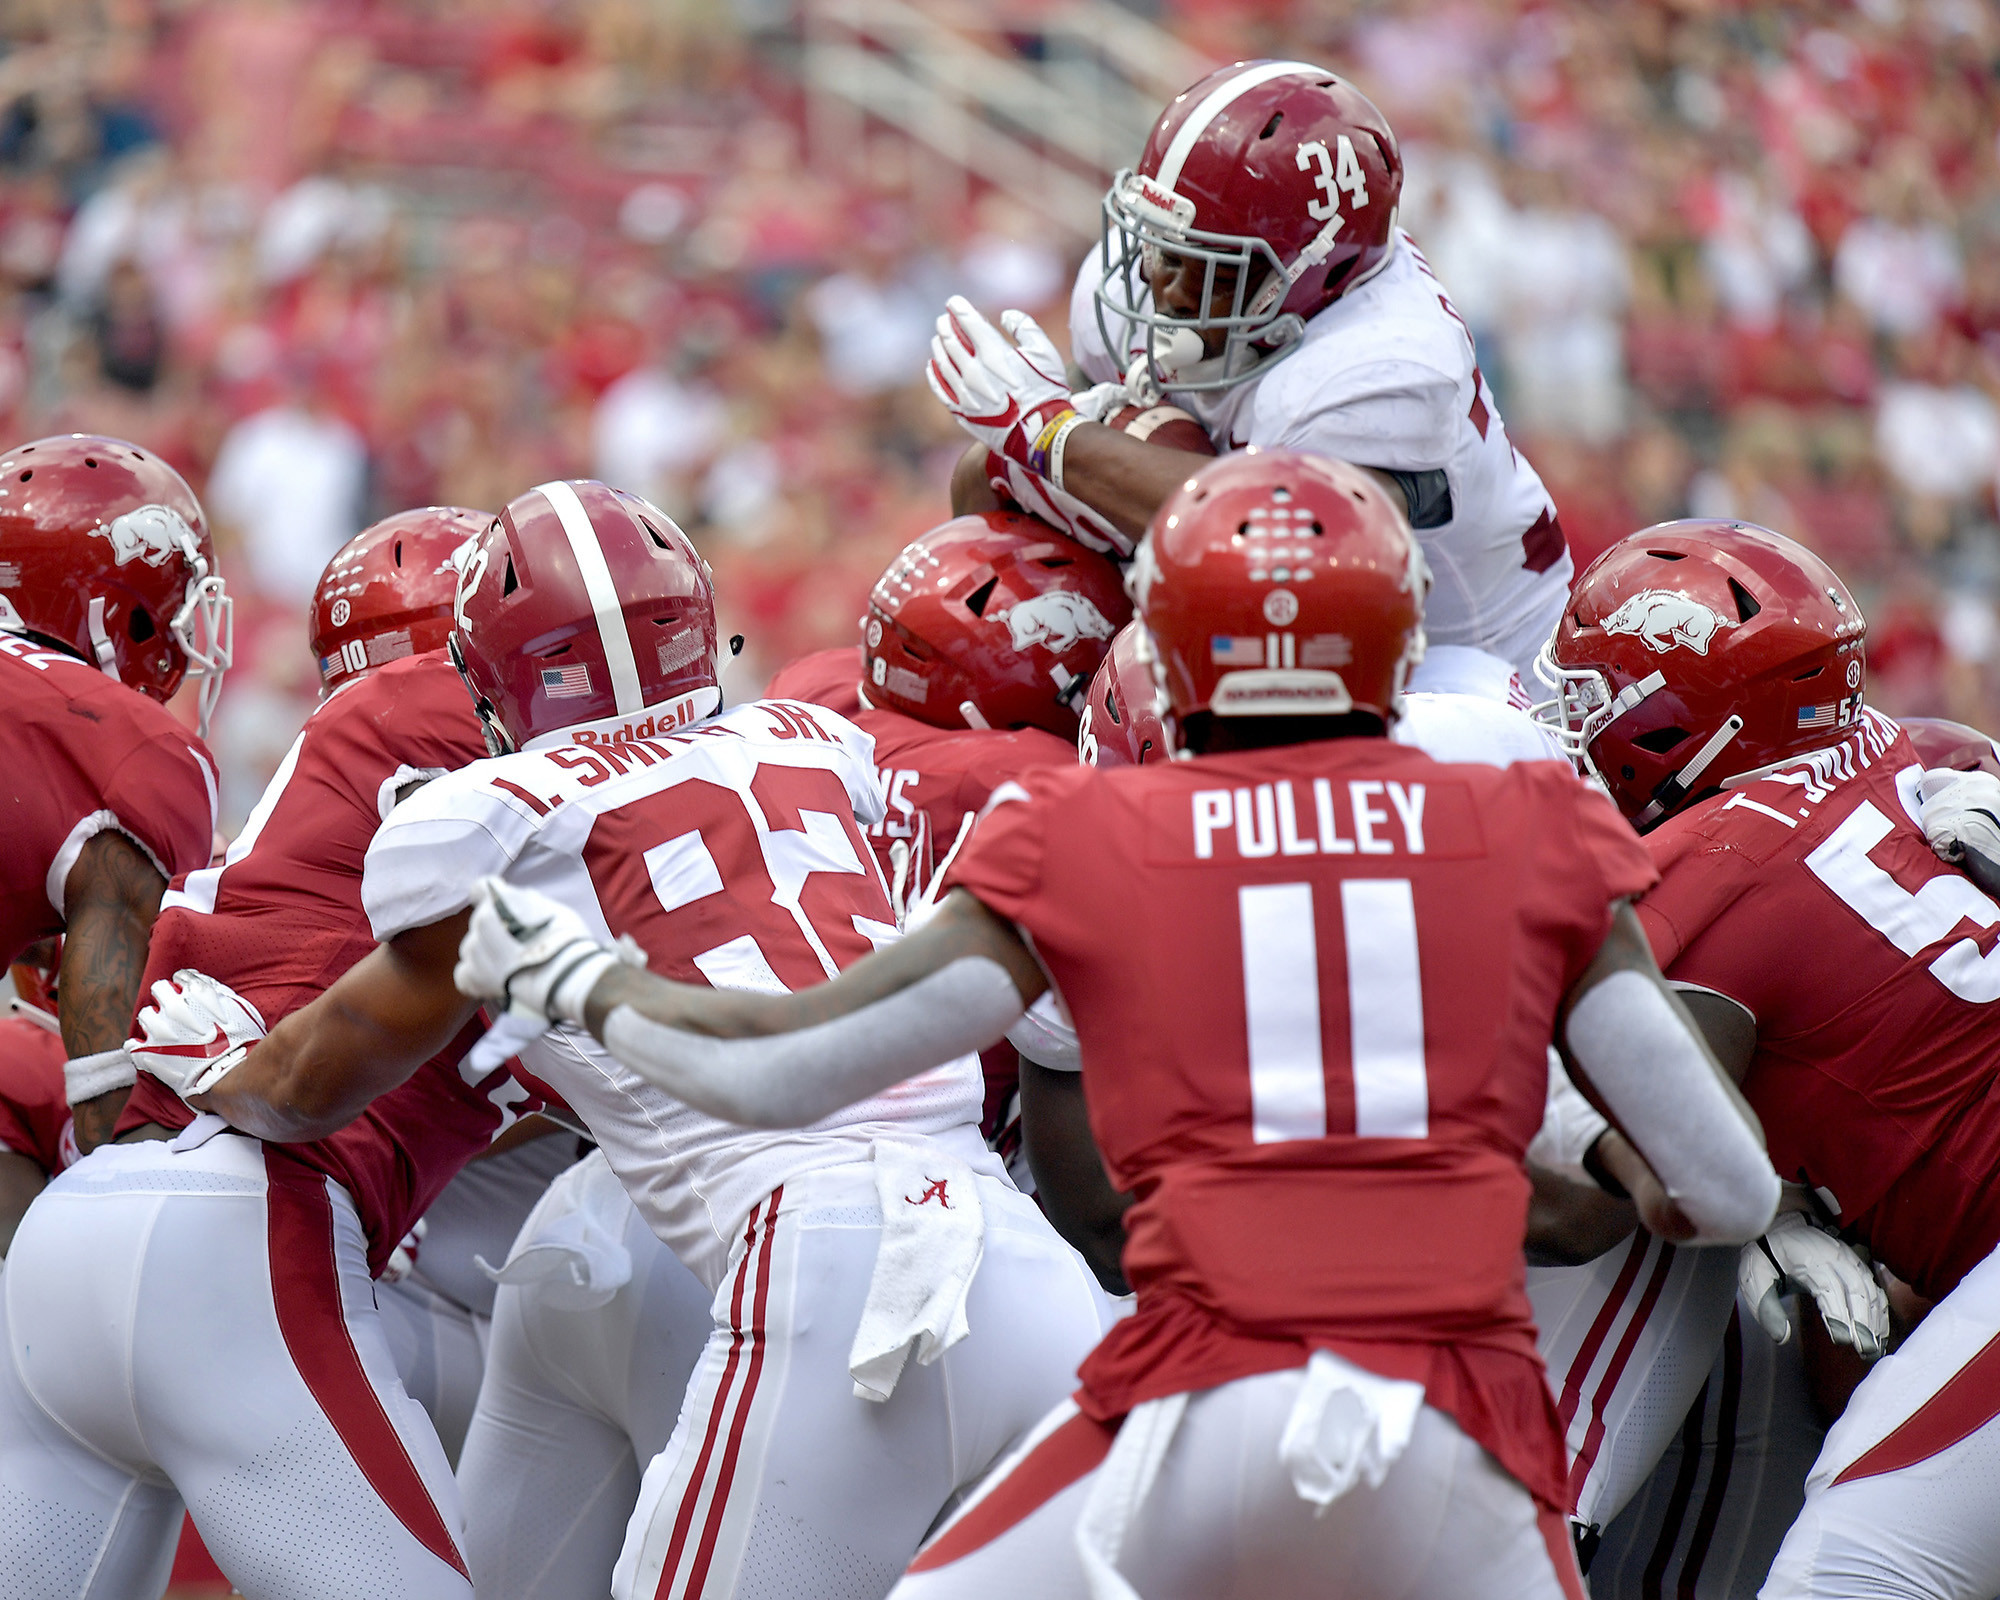 Alabama Crimson Tide running back Damien Harris (34) on his way to another touchdown during the second half of the NCAA football game against the Arkansas Razorbacks at Razorback Stadium on Oct. 6, 2018, in Fayetteville, Ark. Alabama defeated Arkansas 65-31. (Photo by Lee Walls)